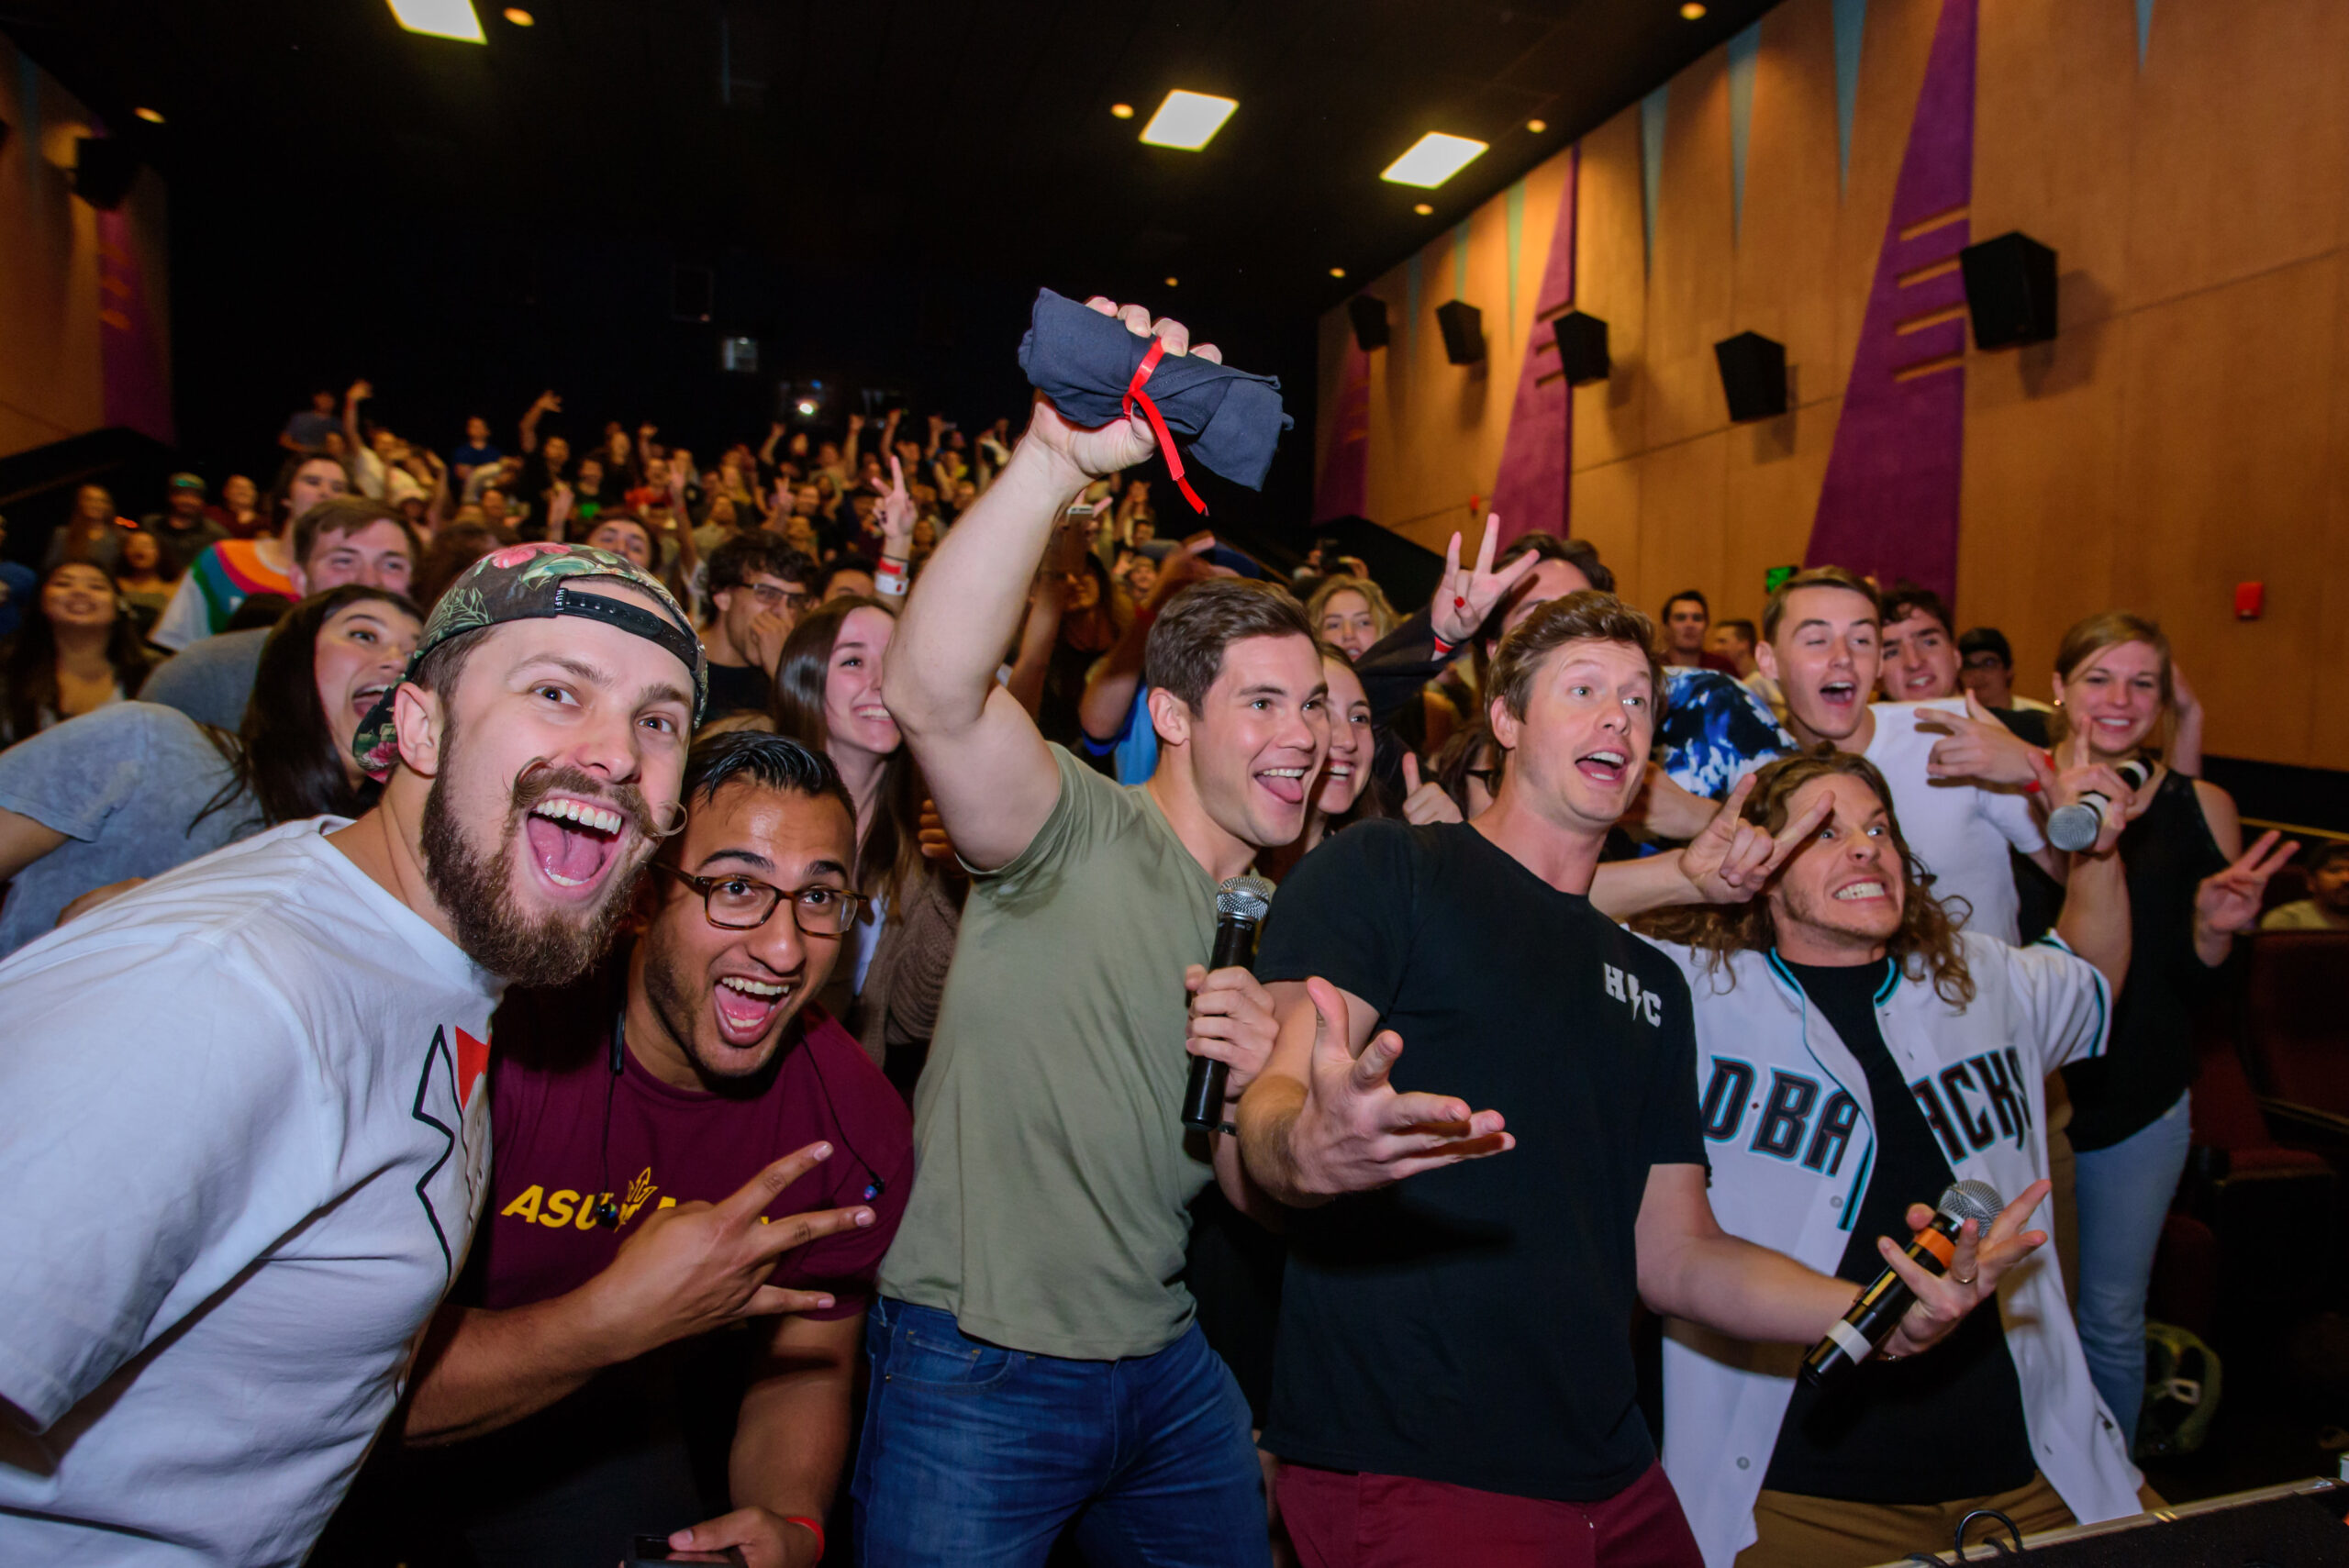 workaholics cast with crowd at game over man experiential marketing event